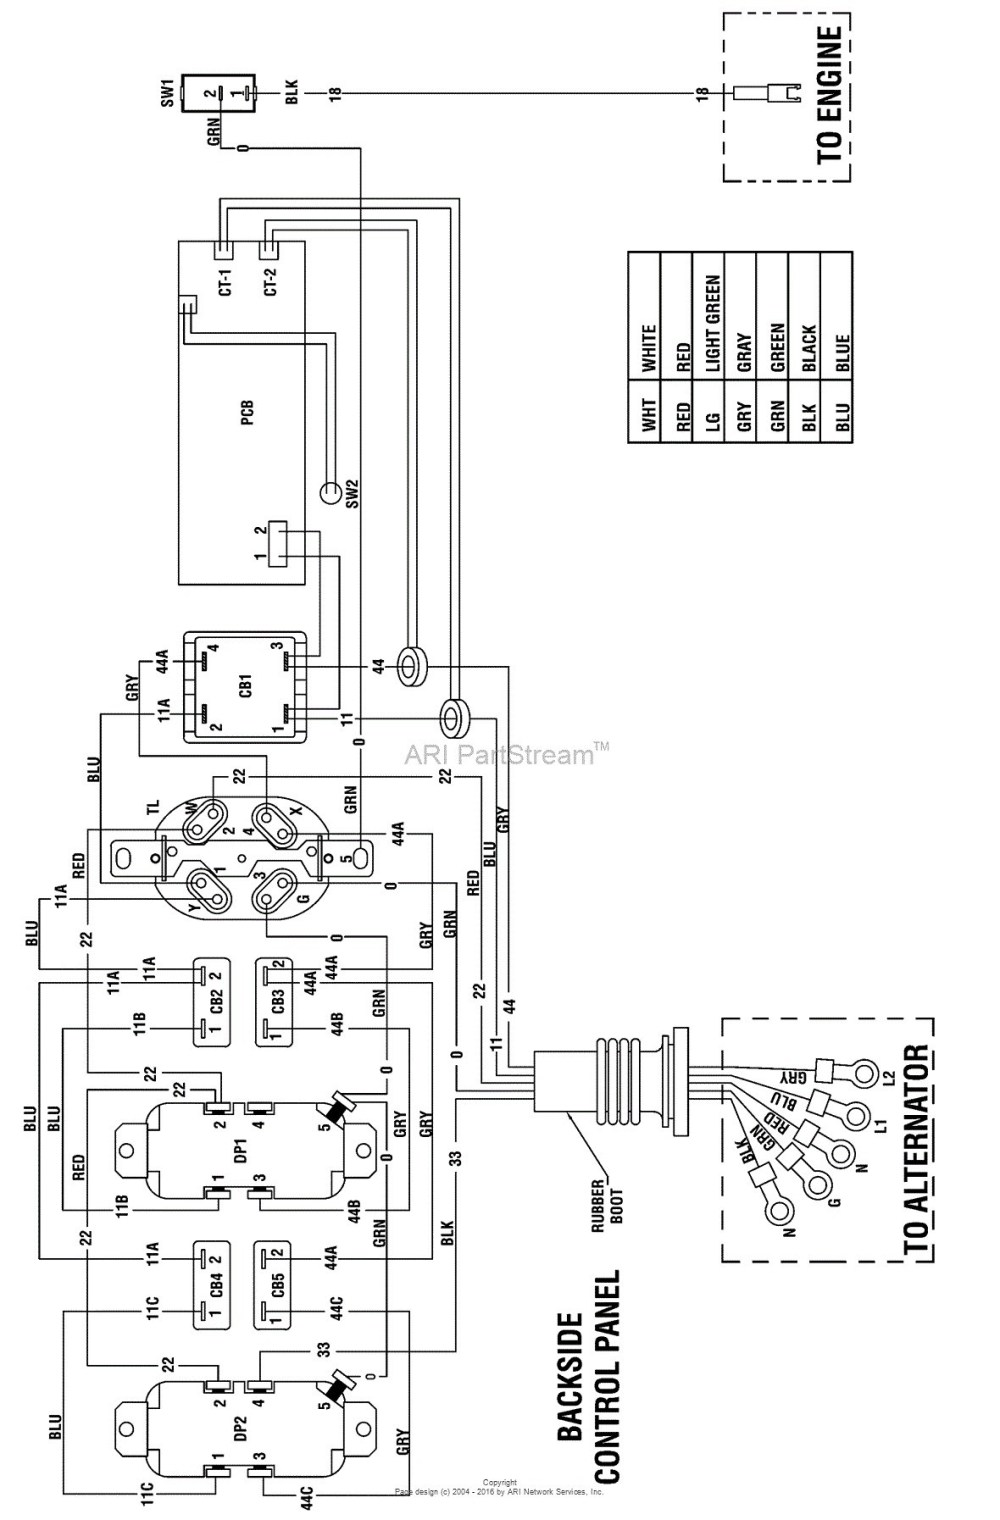 medium resolution of vanguard 18 hp engine wiring diagram wiring library wiring diagrams polaris ranger ev briggs and stratton ignition wiring